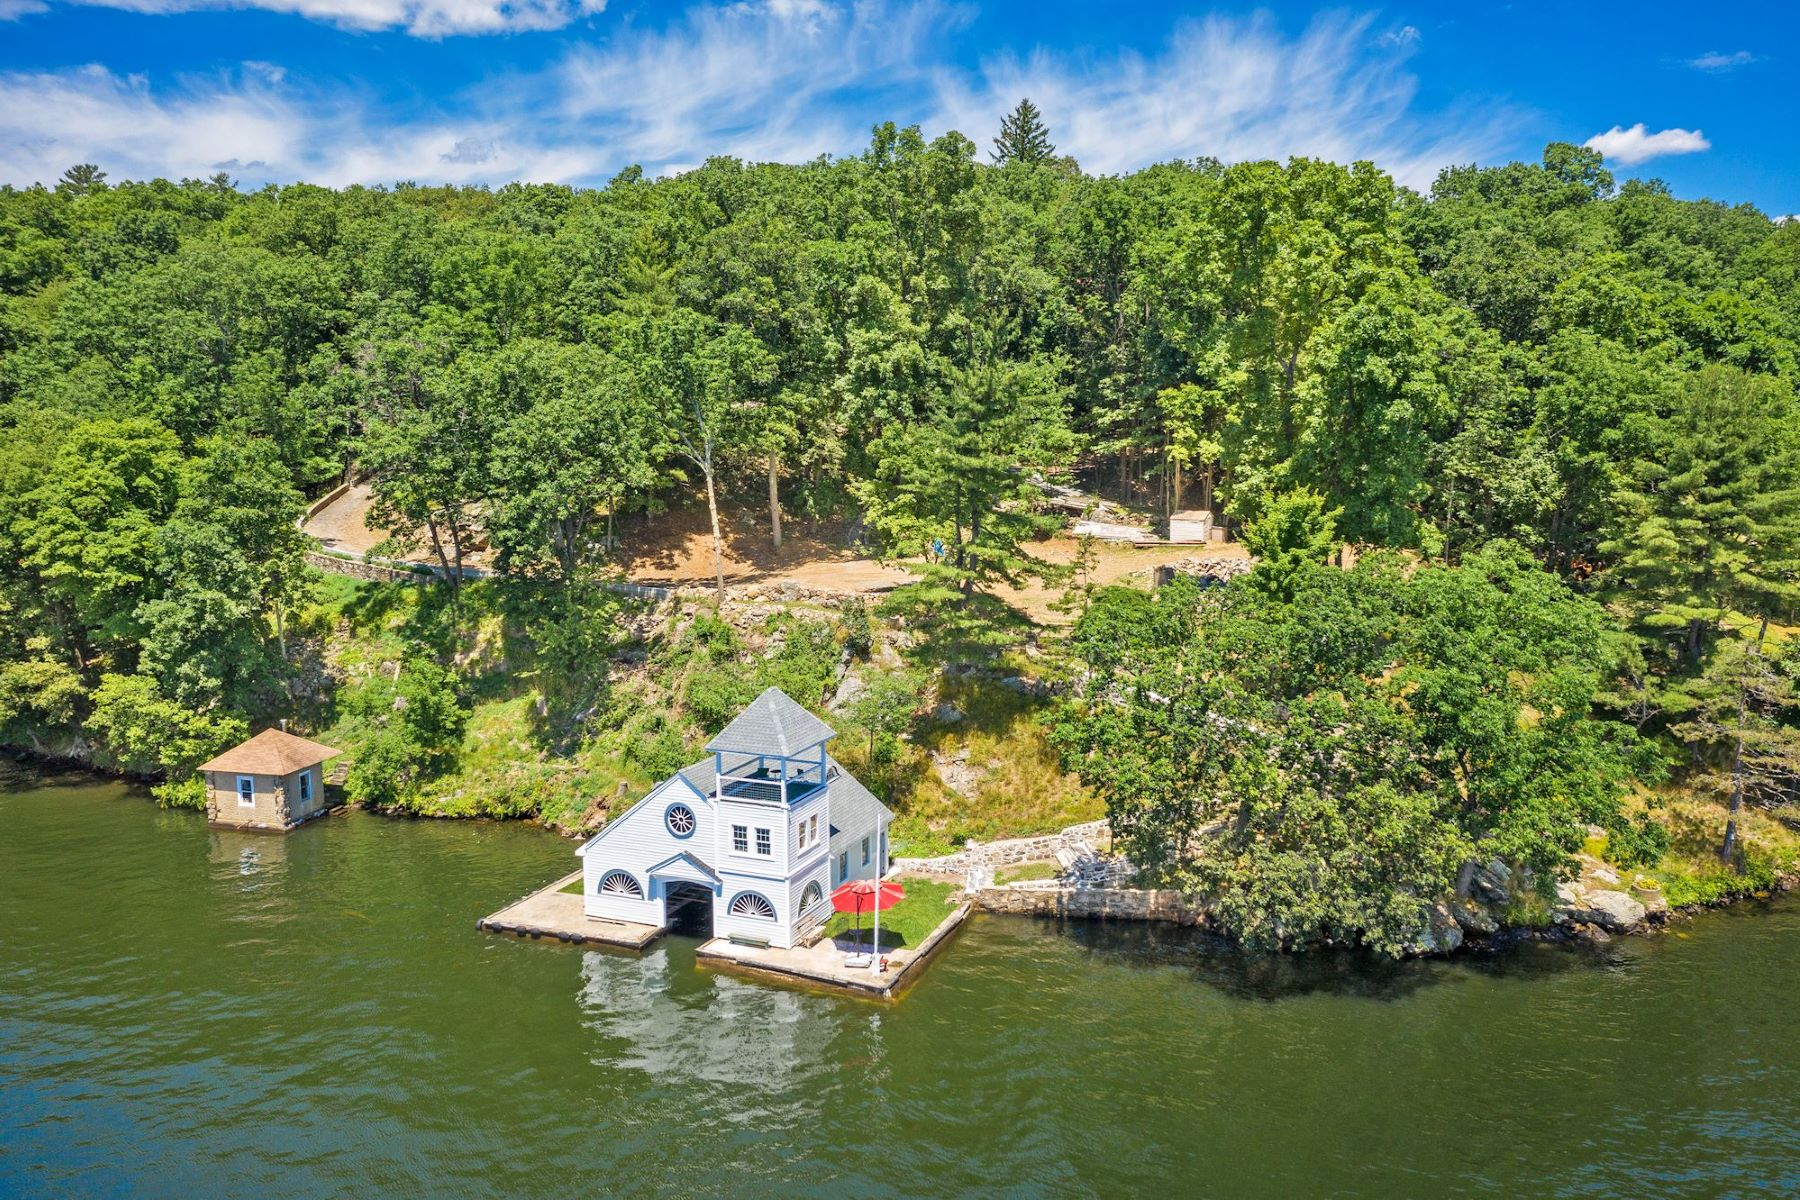 Land for Sale at Serene and Private Lake Front 26 Byram Bay Road, Hopatcong, New Jersey 07843 United States